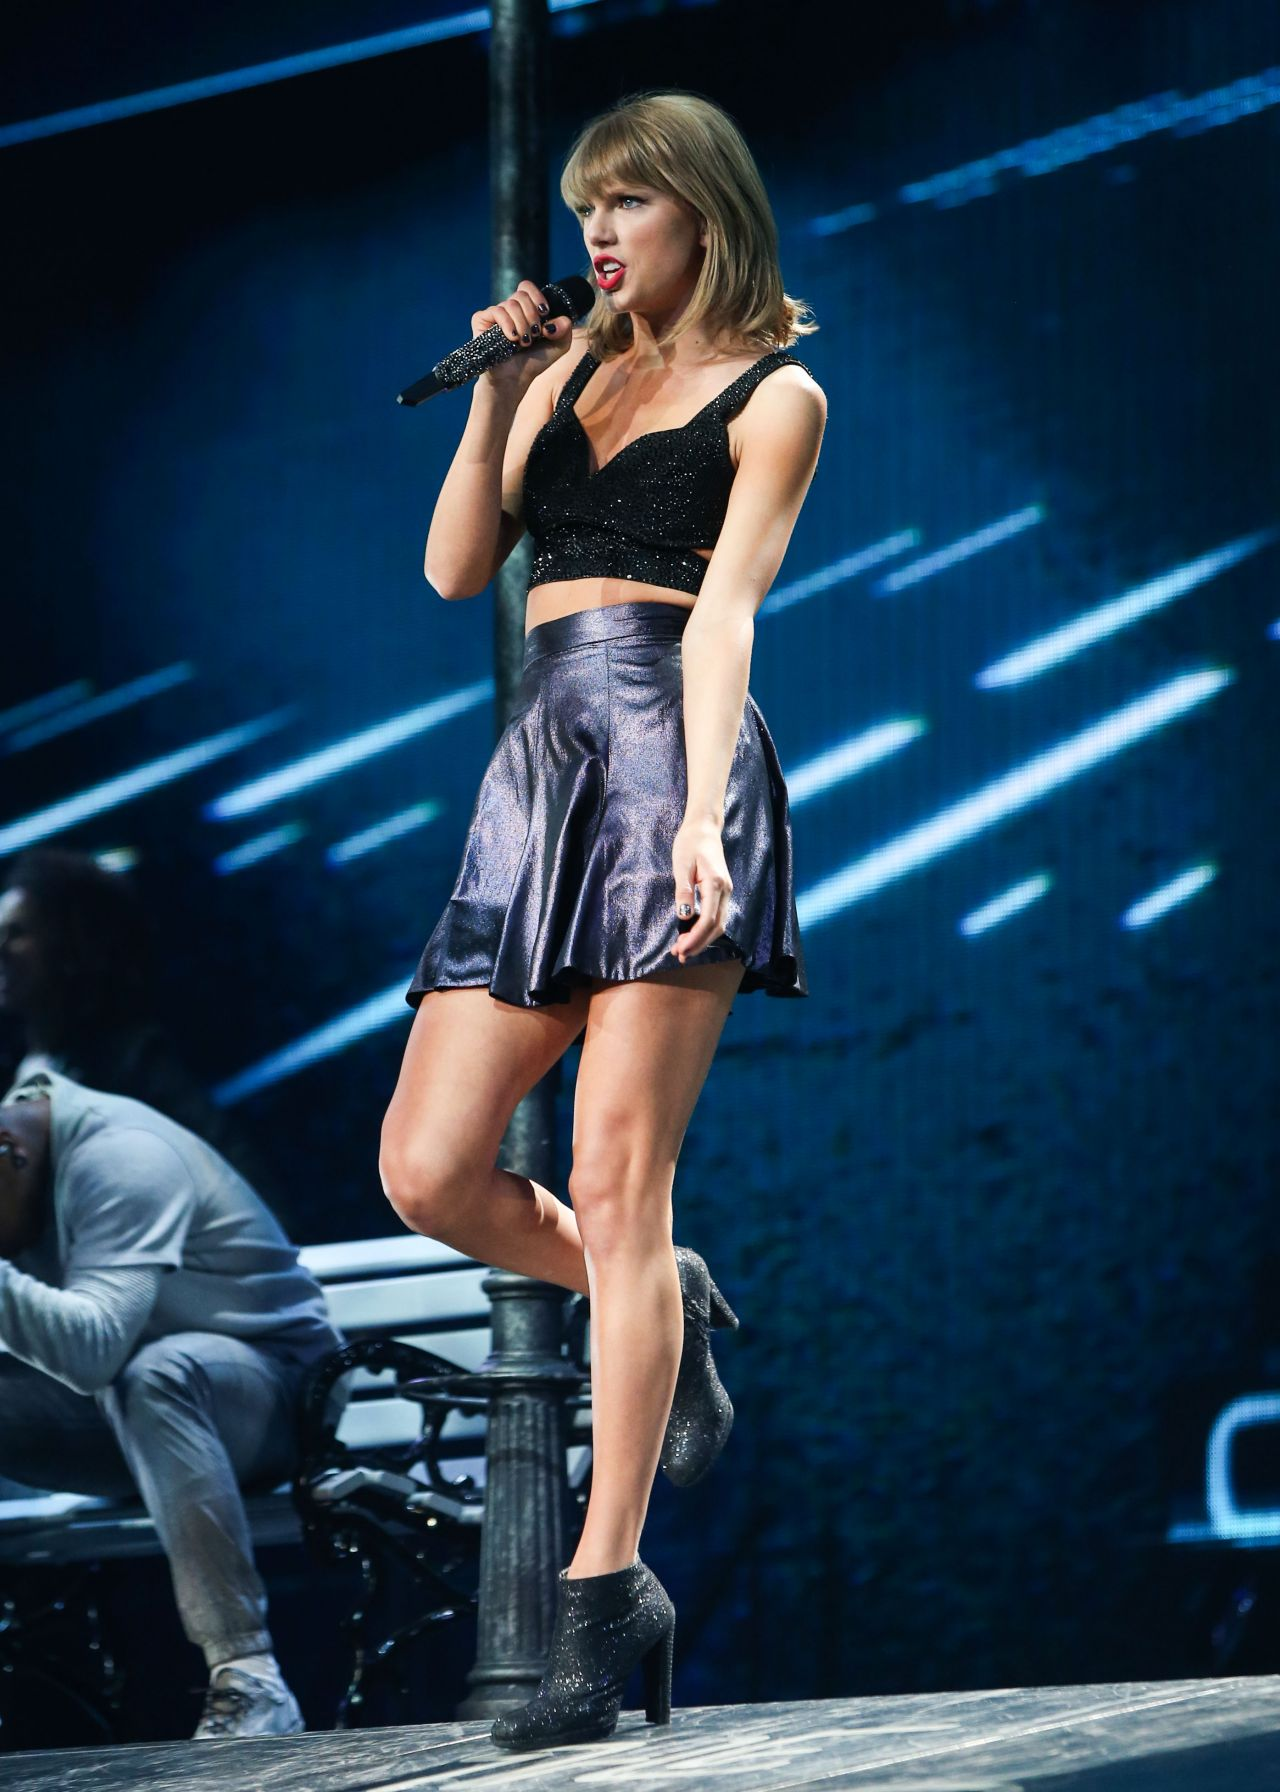 2015 Los Angeles Film Festival: 1989 World Tour Concert In Los Angeles